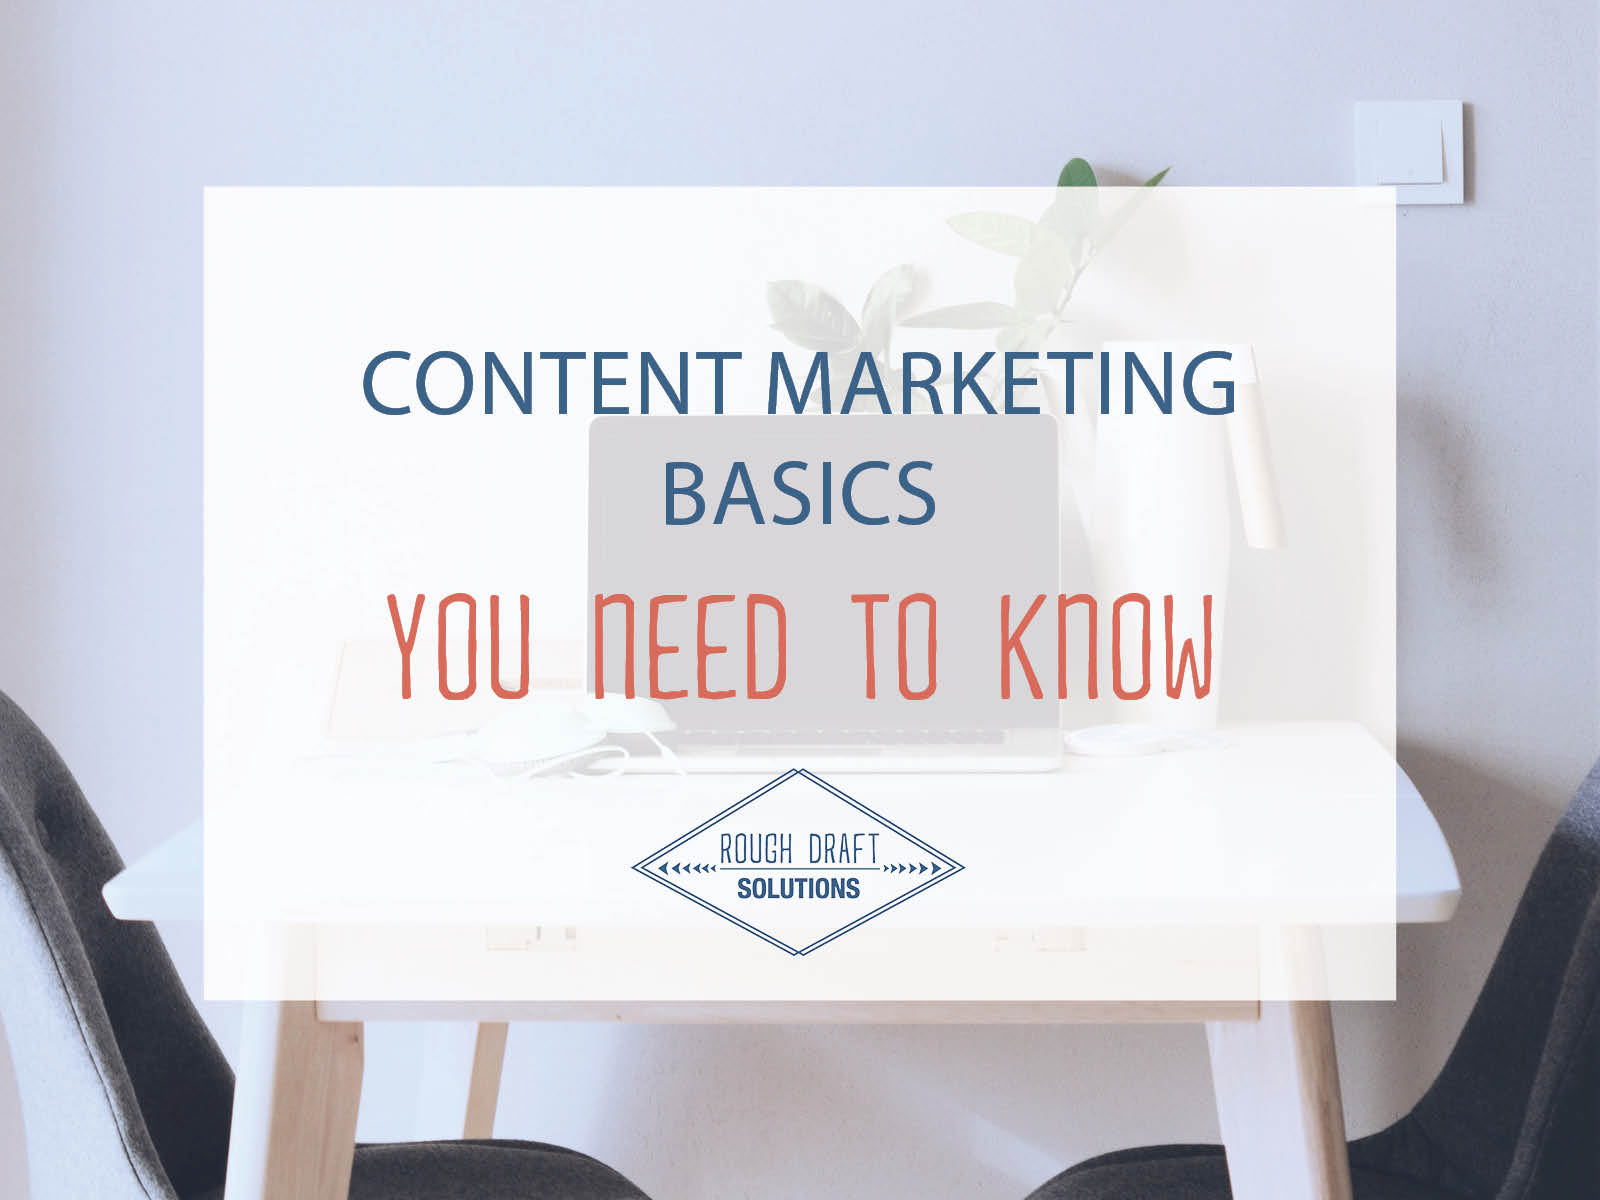 Content Marketing Basics You Need to Know